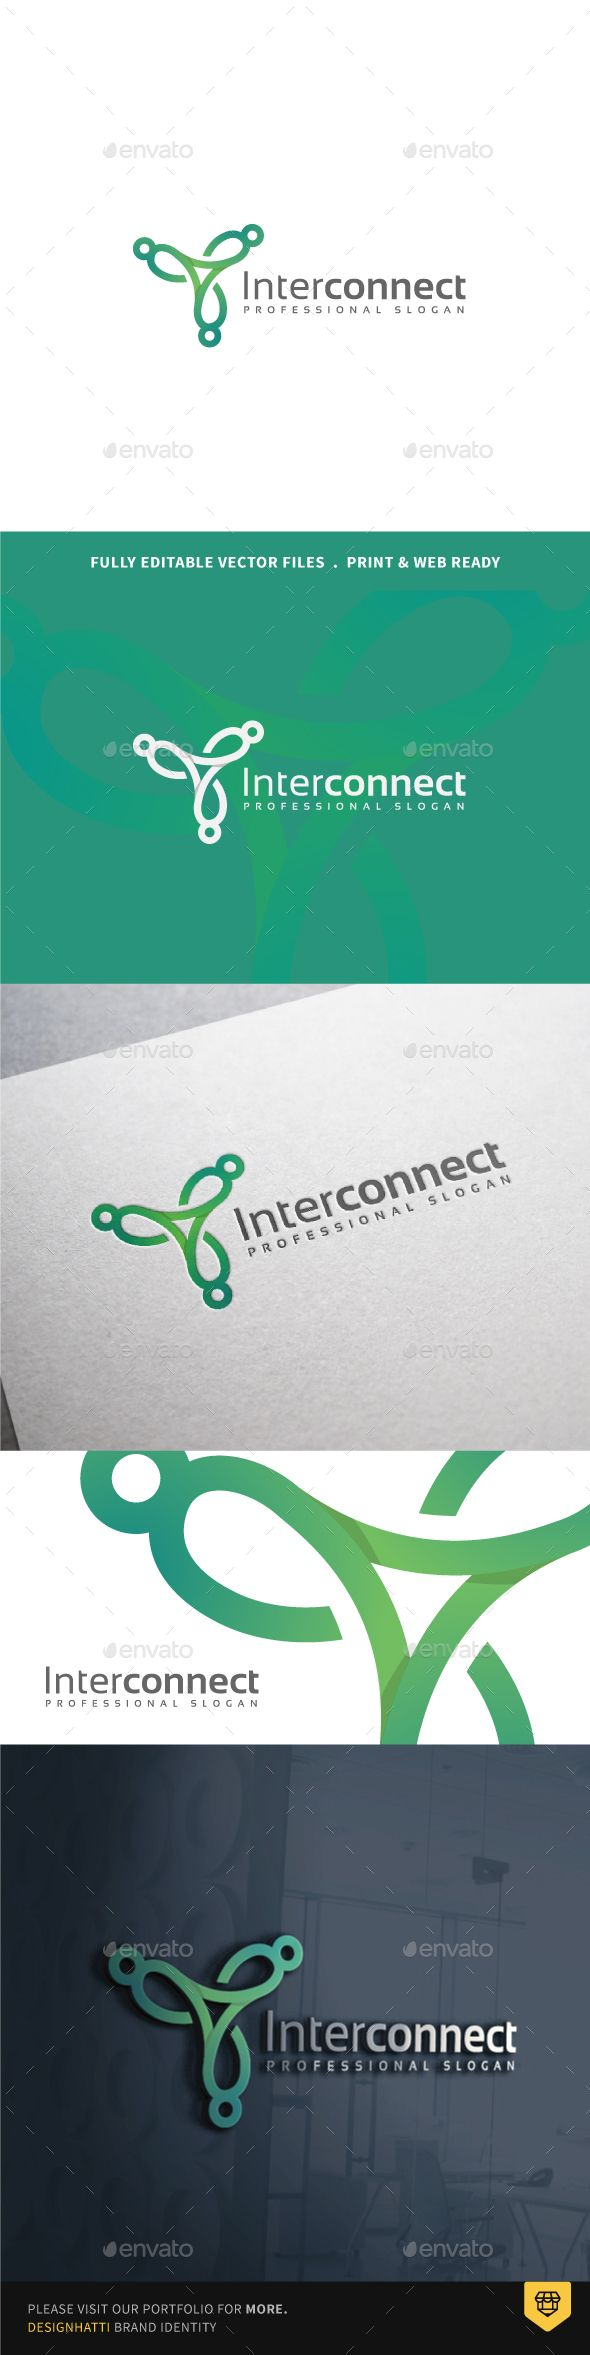 Connected People Logo 96 best Y images